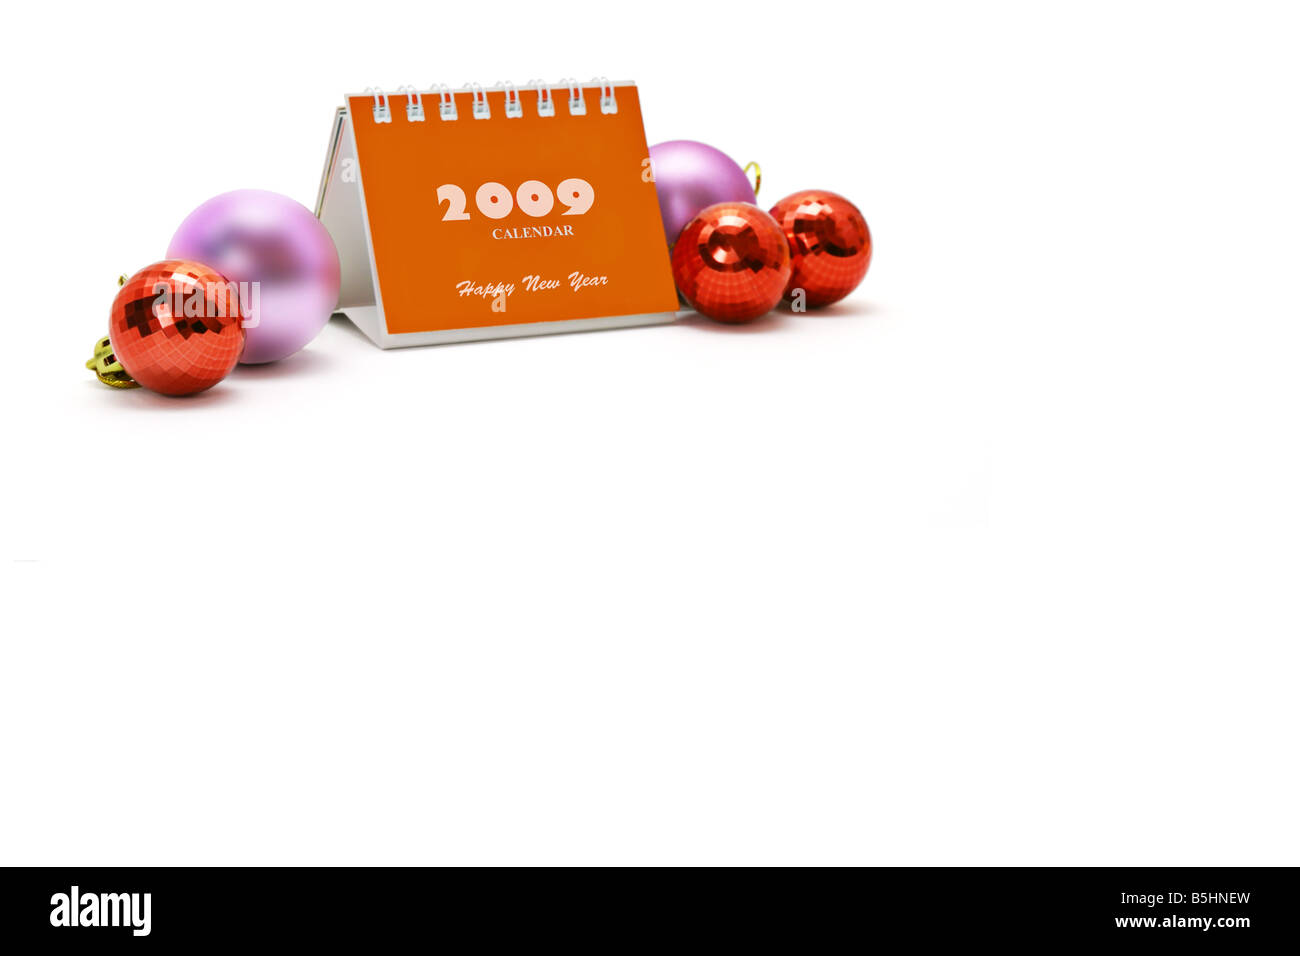 2009 desktop calendar and Christmas ornaments with copy space - Stock Image